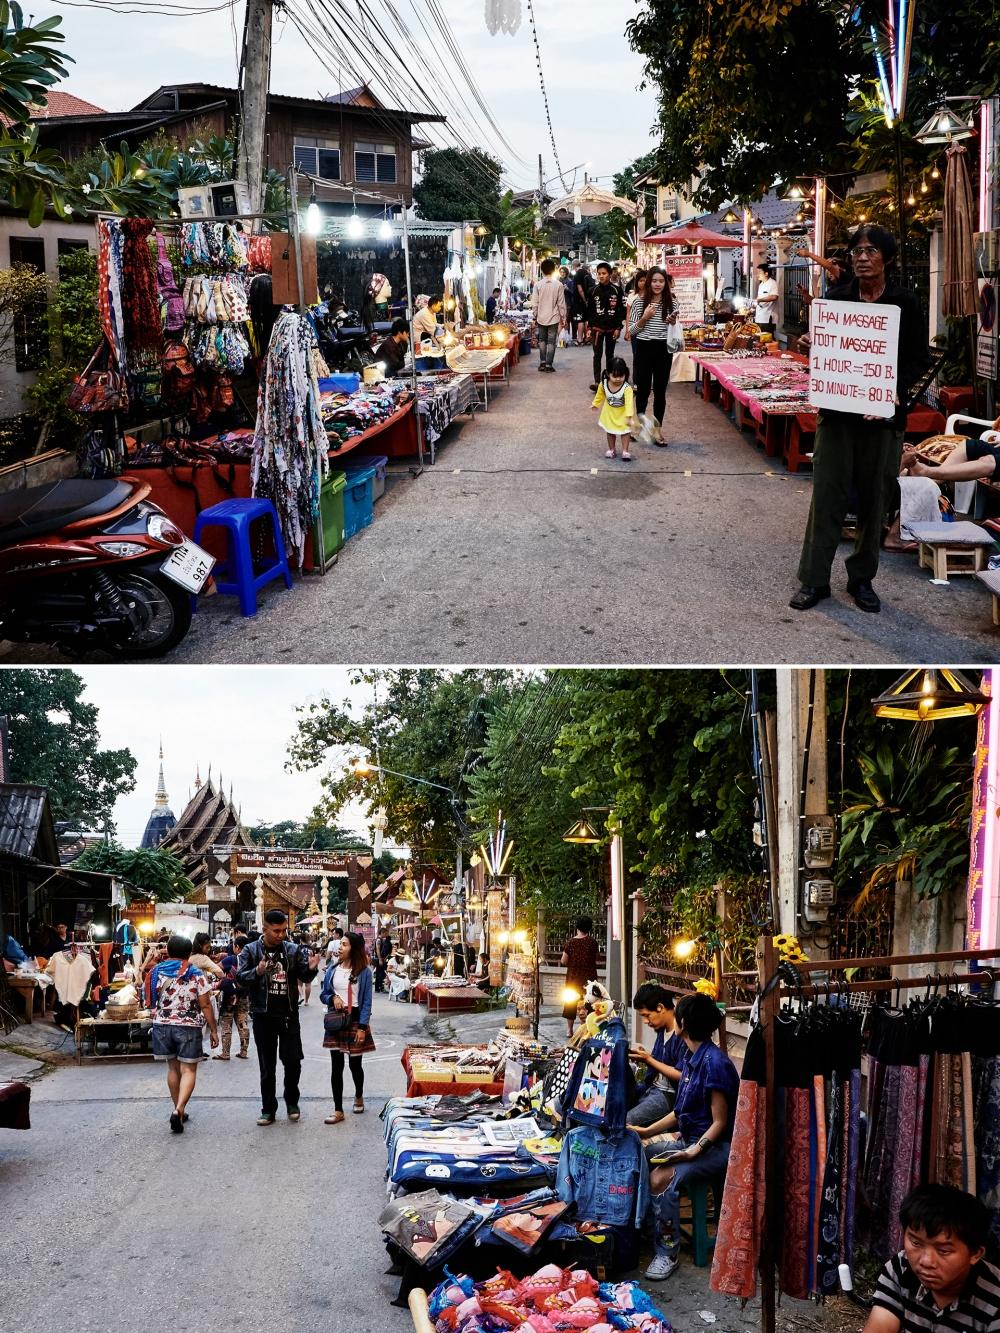 Night Market, Strassenmarkt in Nordthailand